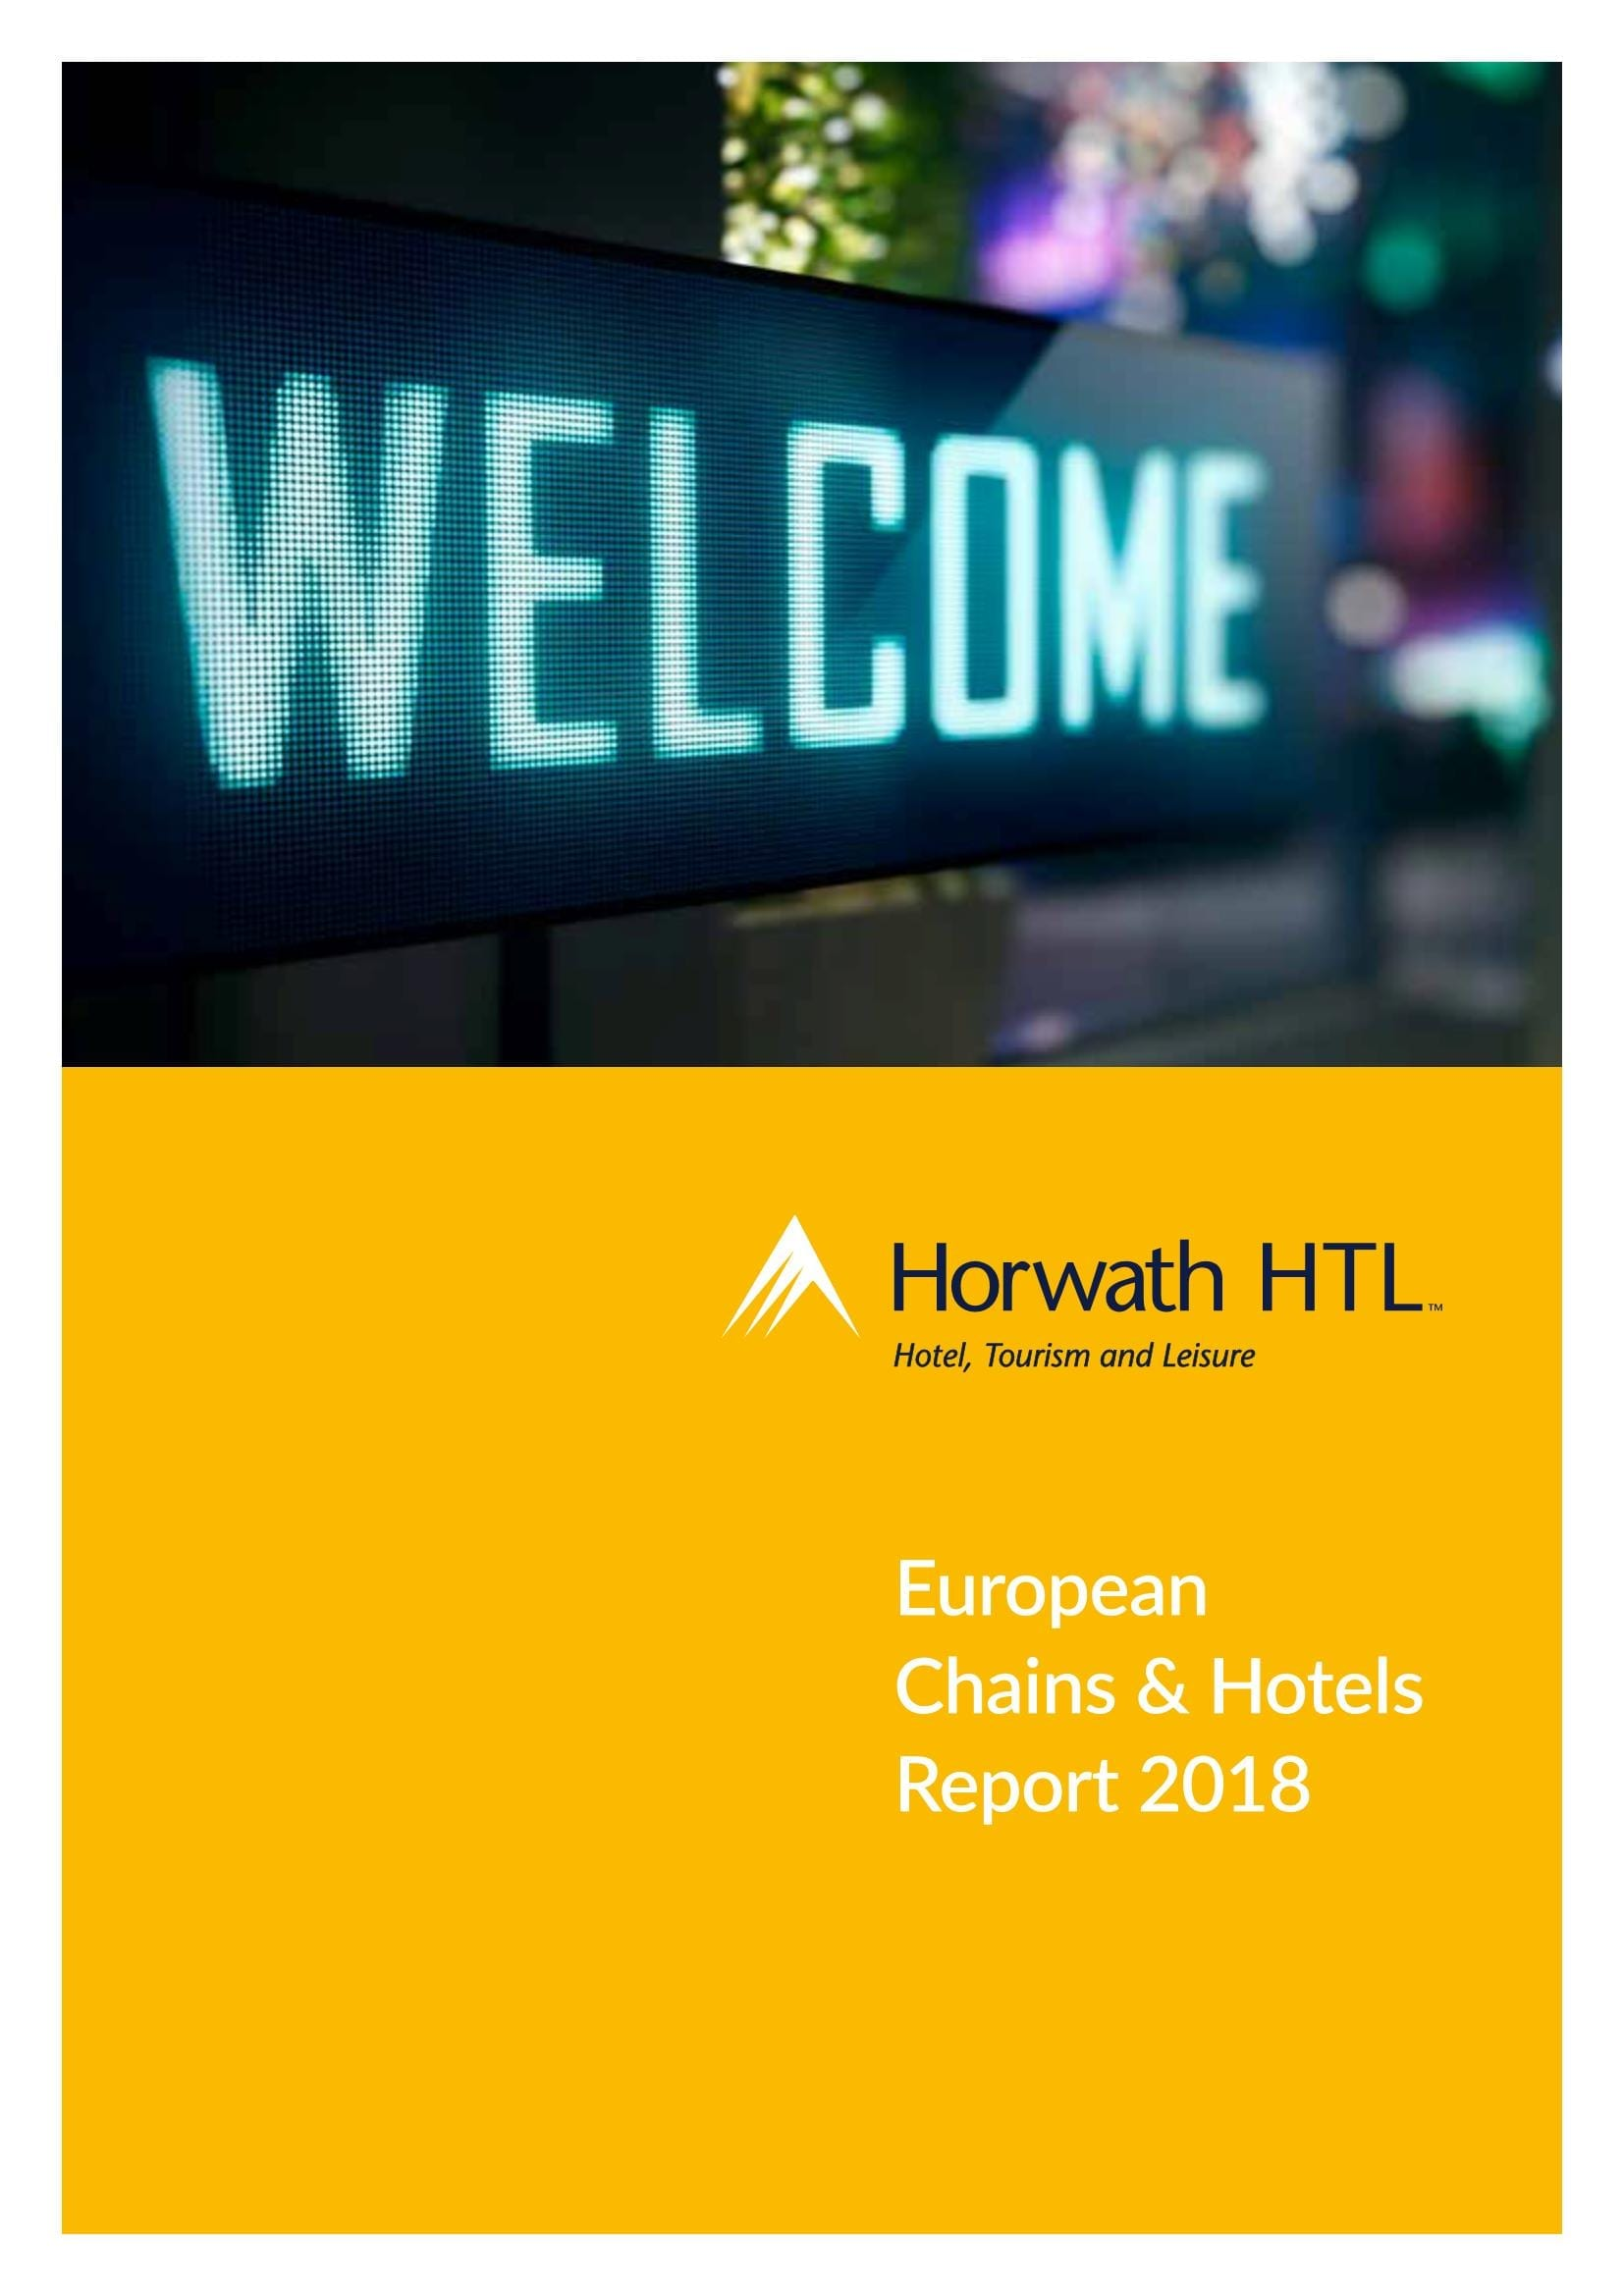 European Chains & Hotels Report 2018